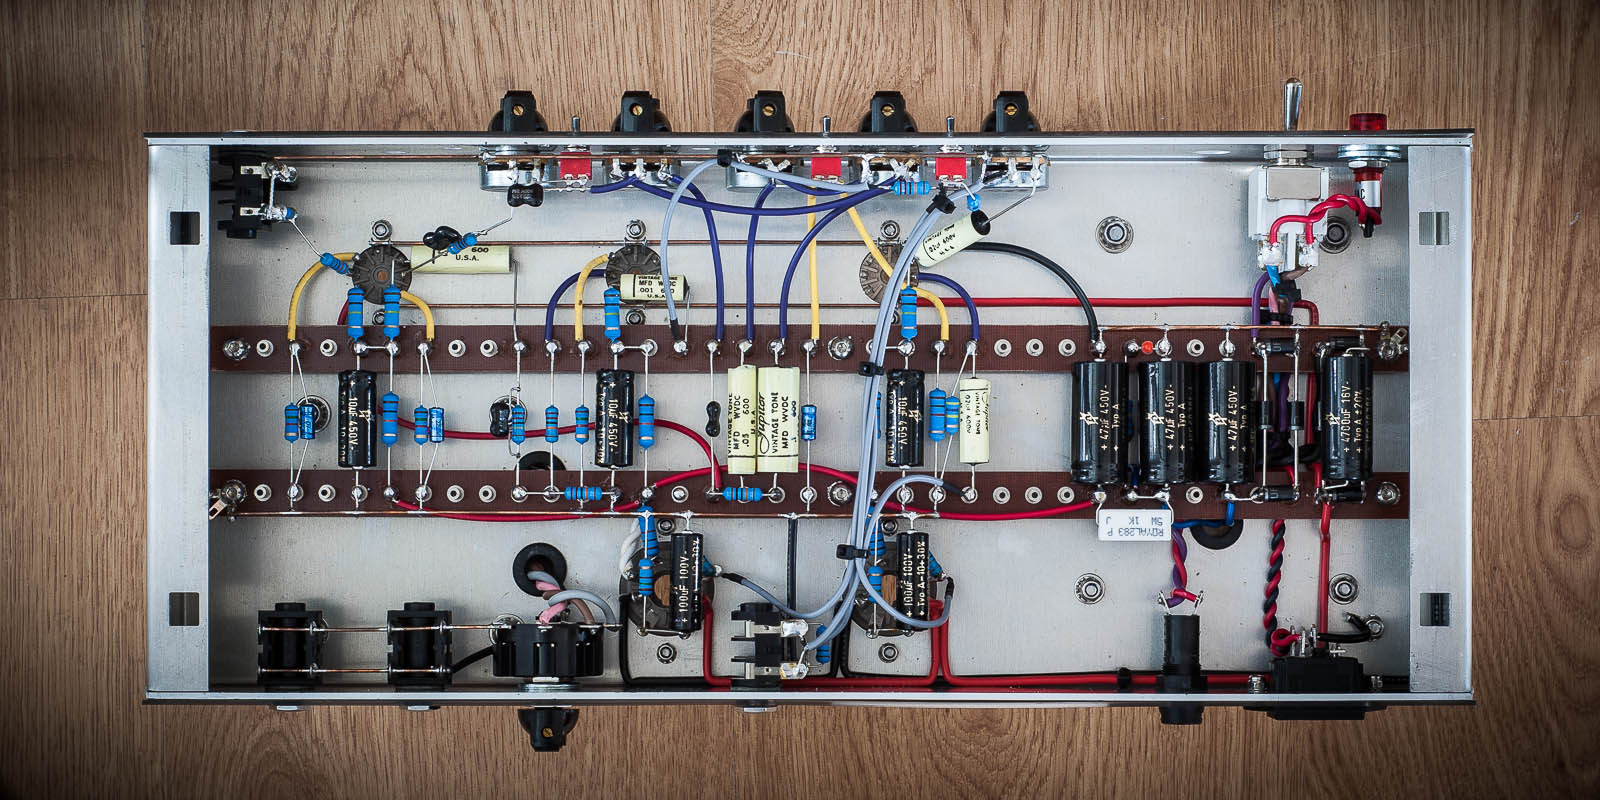 El34 Amps In The 20 To 25 Watt Range Page 3 Gear 20w Power Tube Amplifier With Fx Makes Among Finest Small Boutique Swappable 6l6 And Look At This Job